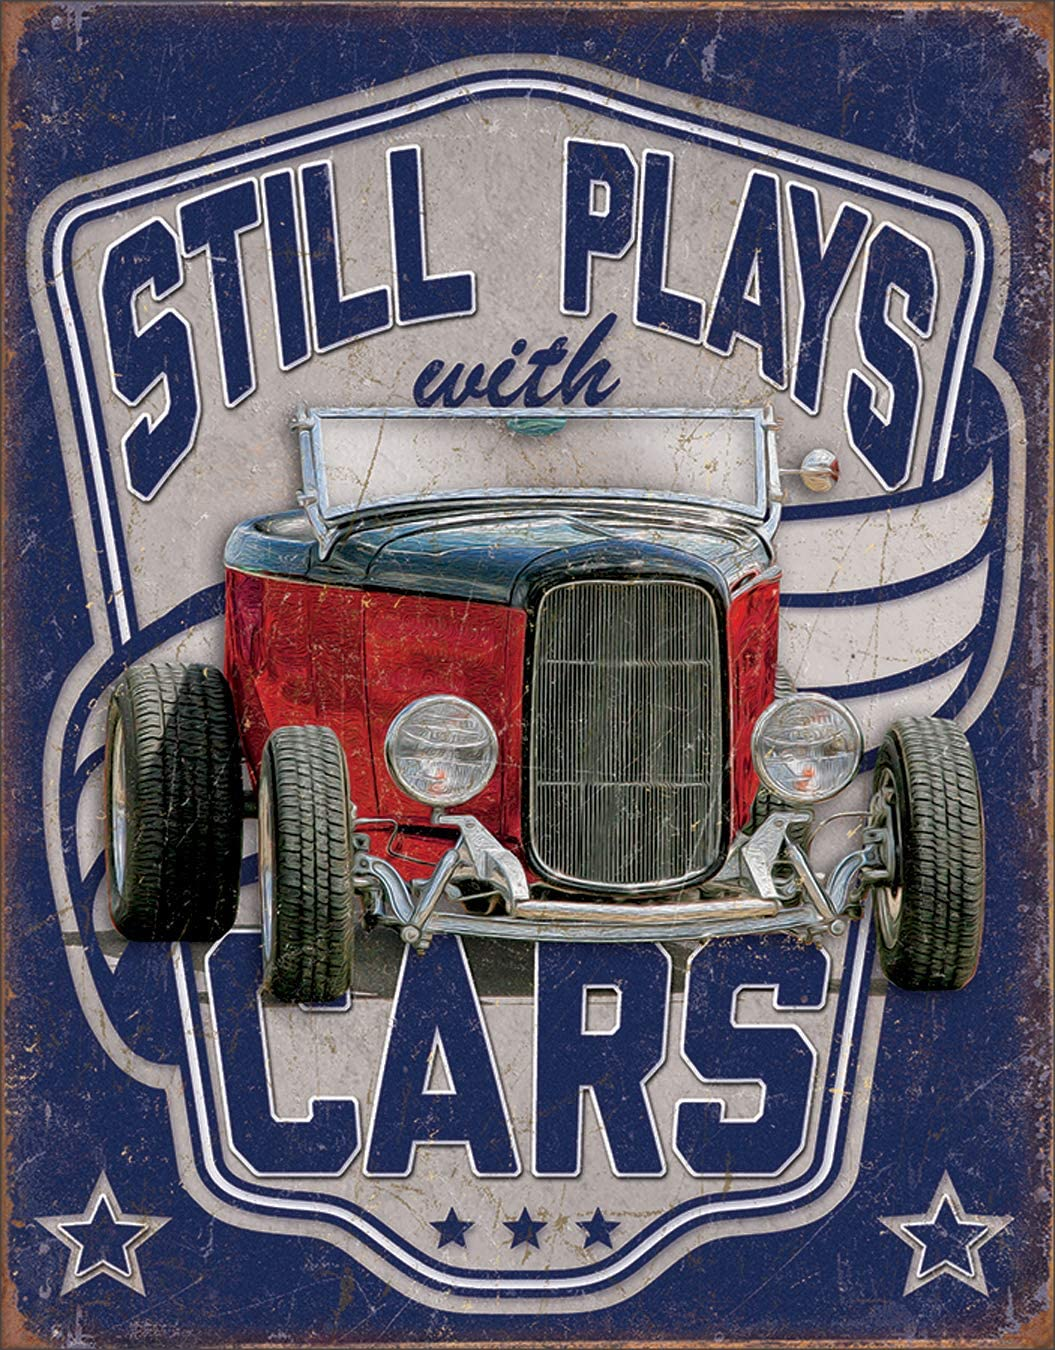 """Desperate Enterprises Still Plays with Cars Tin Sign, 12.5"""" W x 16"""" H"""